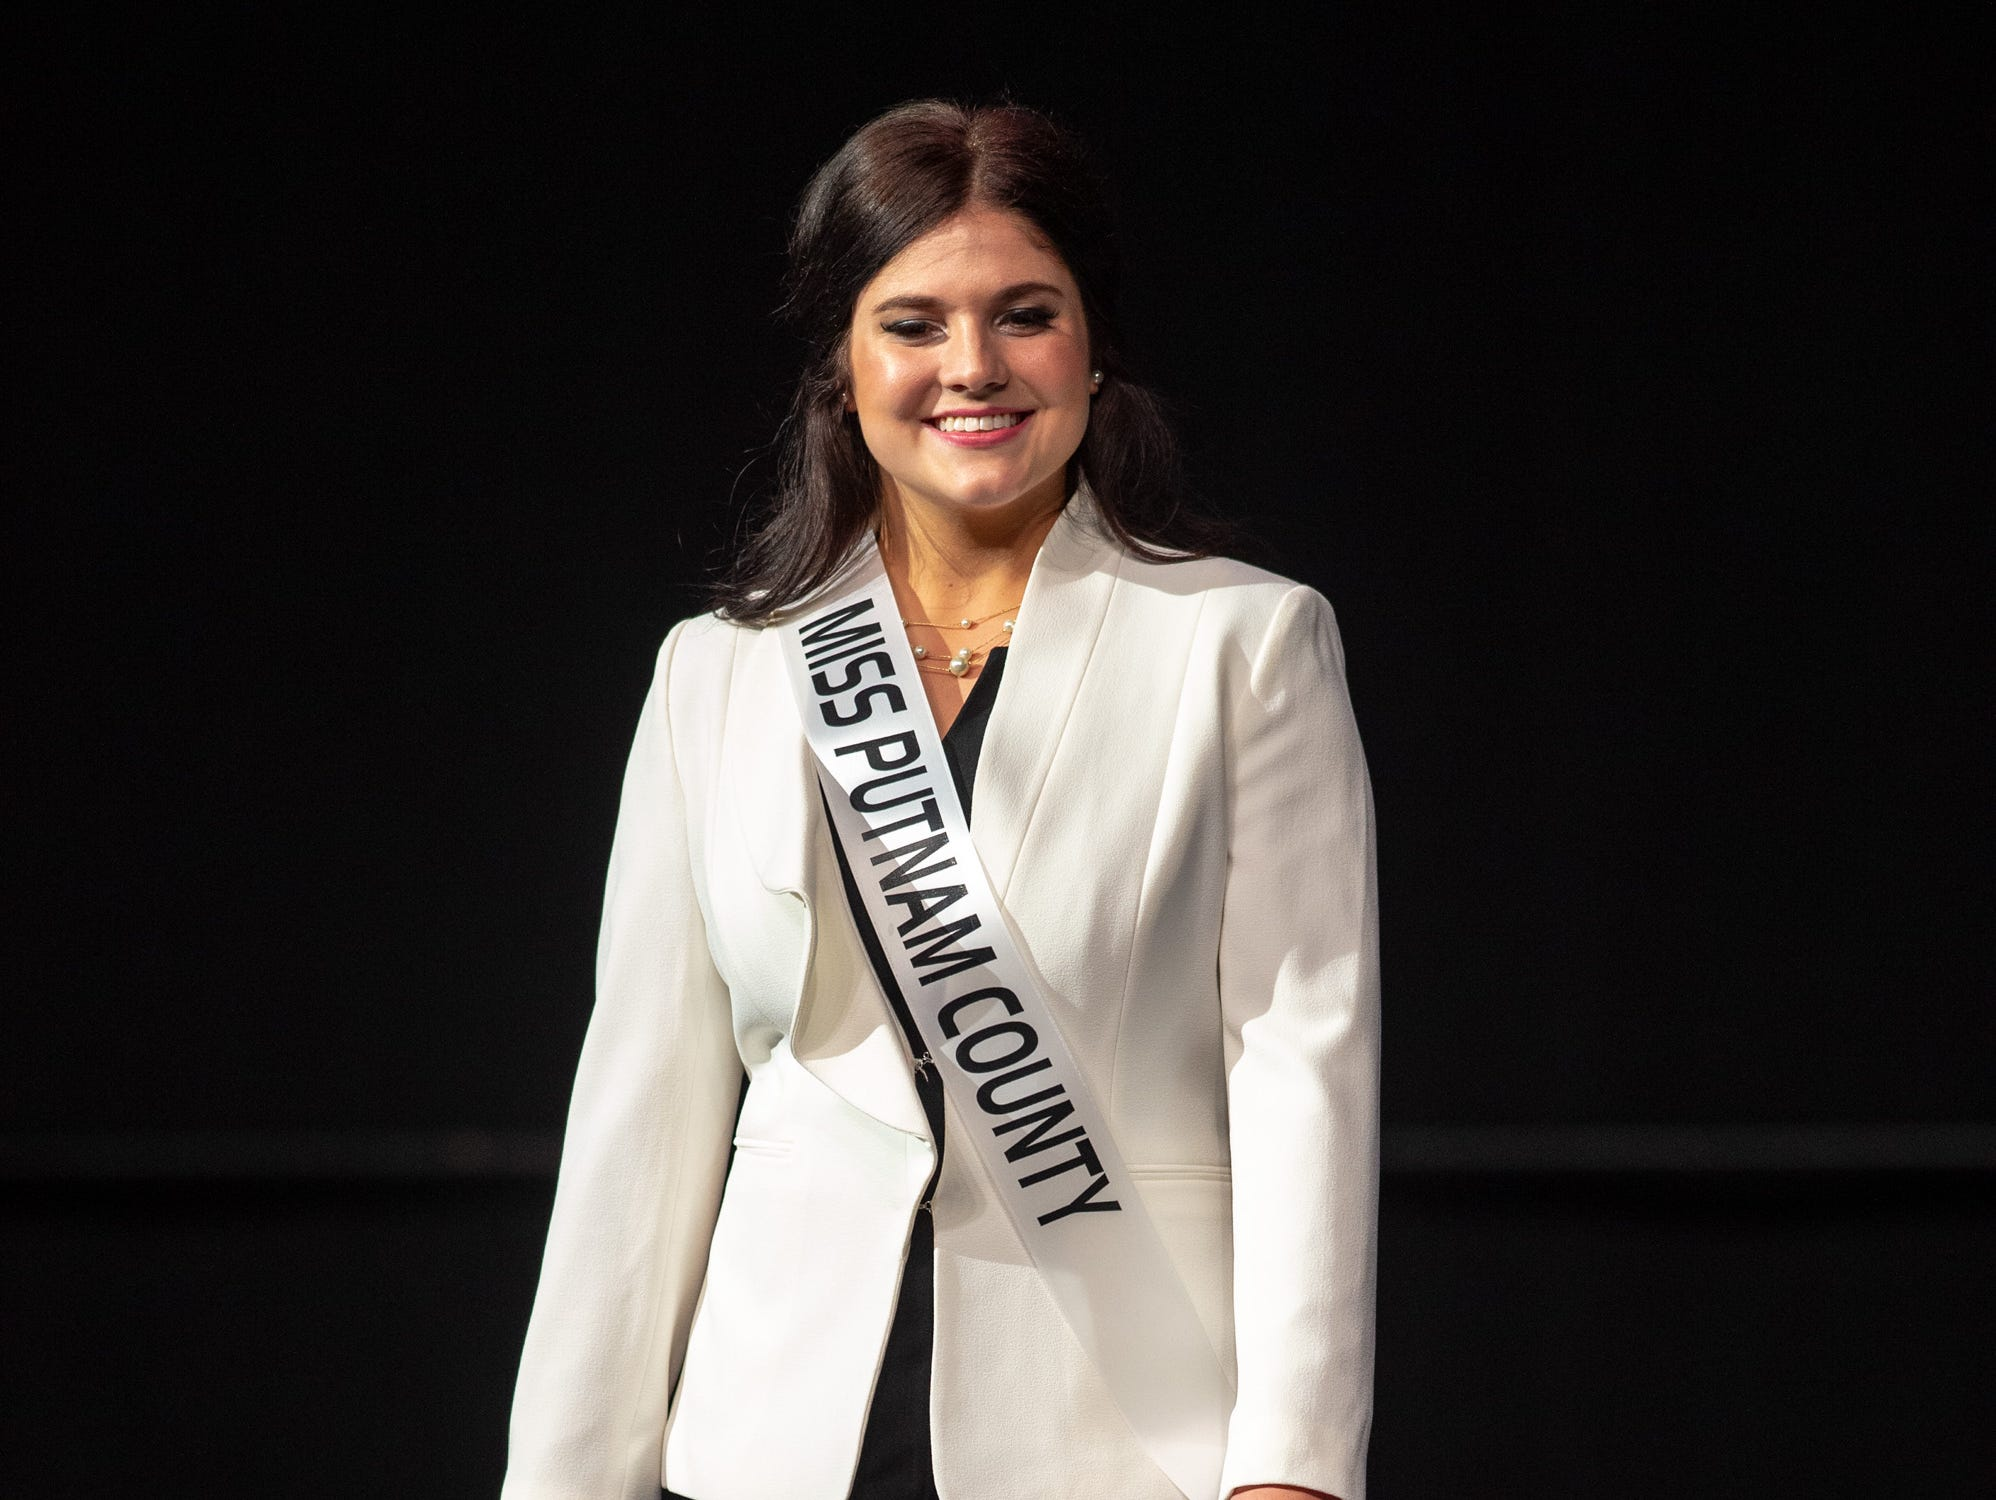 Miss Putnam County, Raegan Bowling, during the 61st Indiana State Fair Queen Pageant at the Indiana State Fairgrounds in Indianapolis, Sunday, Jan. 6, 2019. Miss Benton County, Halle Shoults, was crowned the 2019 Indiana State Fair Queen.